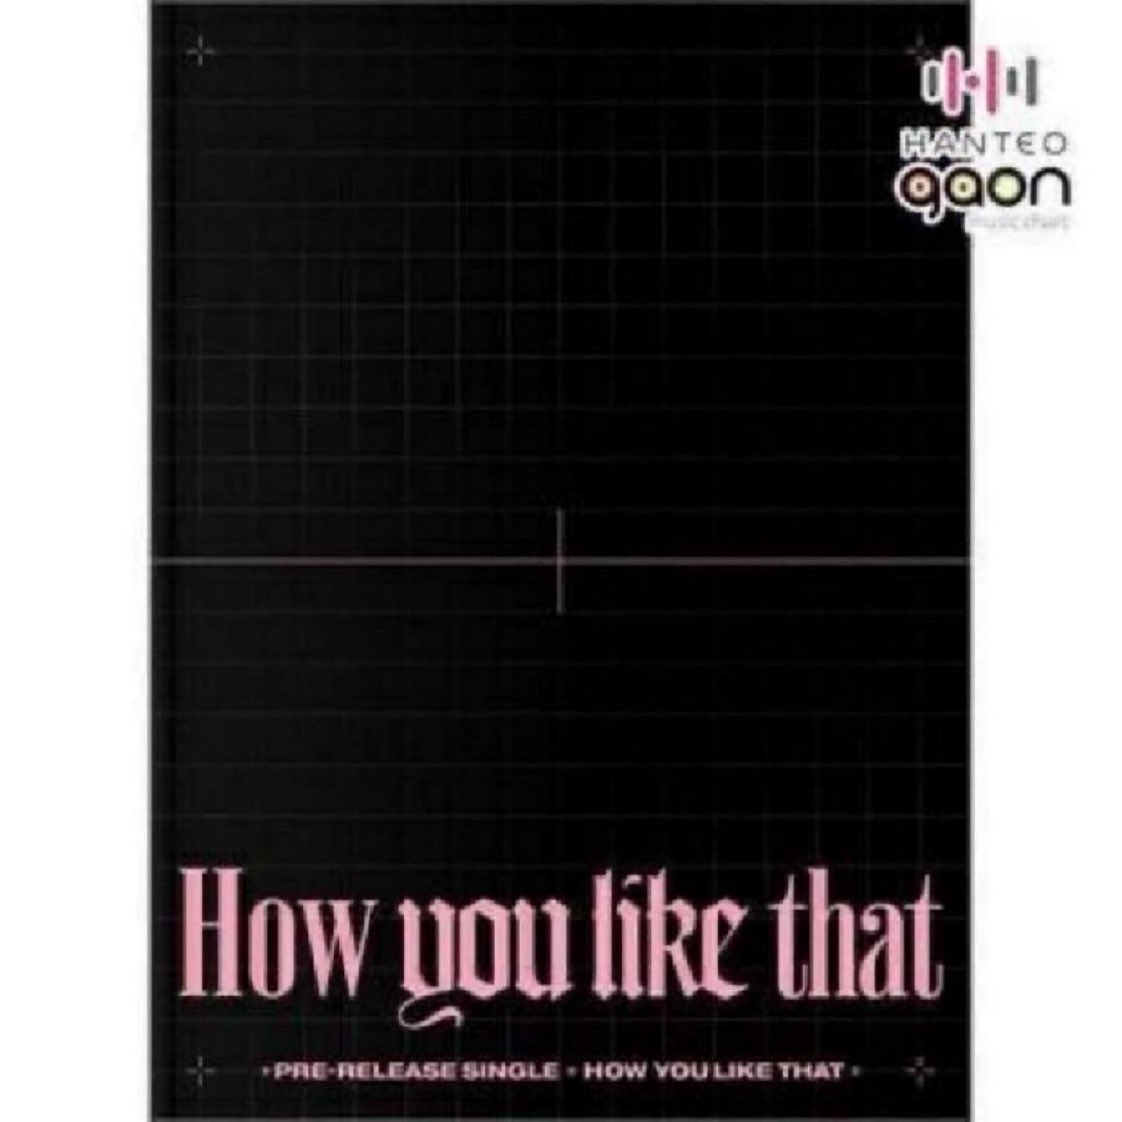 open PO: BLACKPINK - Special Edition HOW YOU LIKE THAT  IDR 270.000   INC EMS, TAX KTOWN4U (terhitung chart) bisa DP 110K  CLOSE : 12 JULI  Order / ask? DM <br>http://pic.twitter.com/3Jzty5peR8